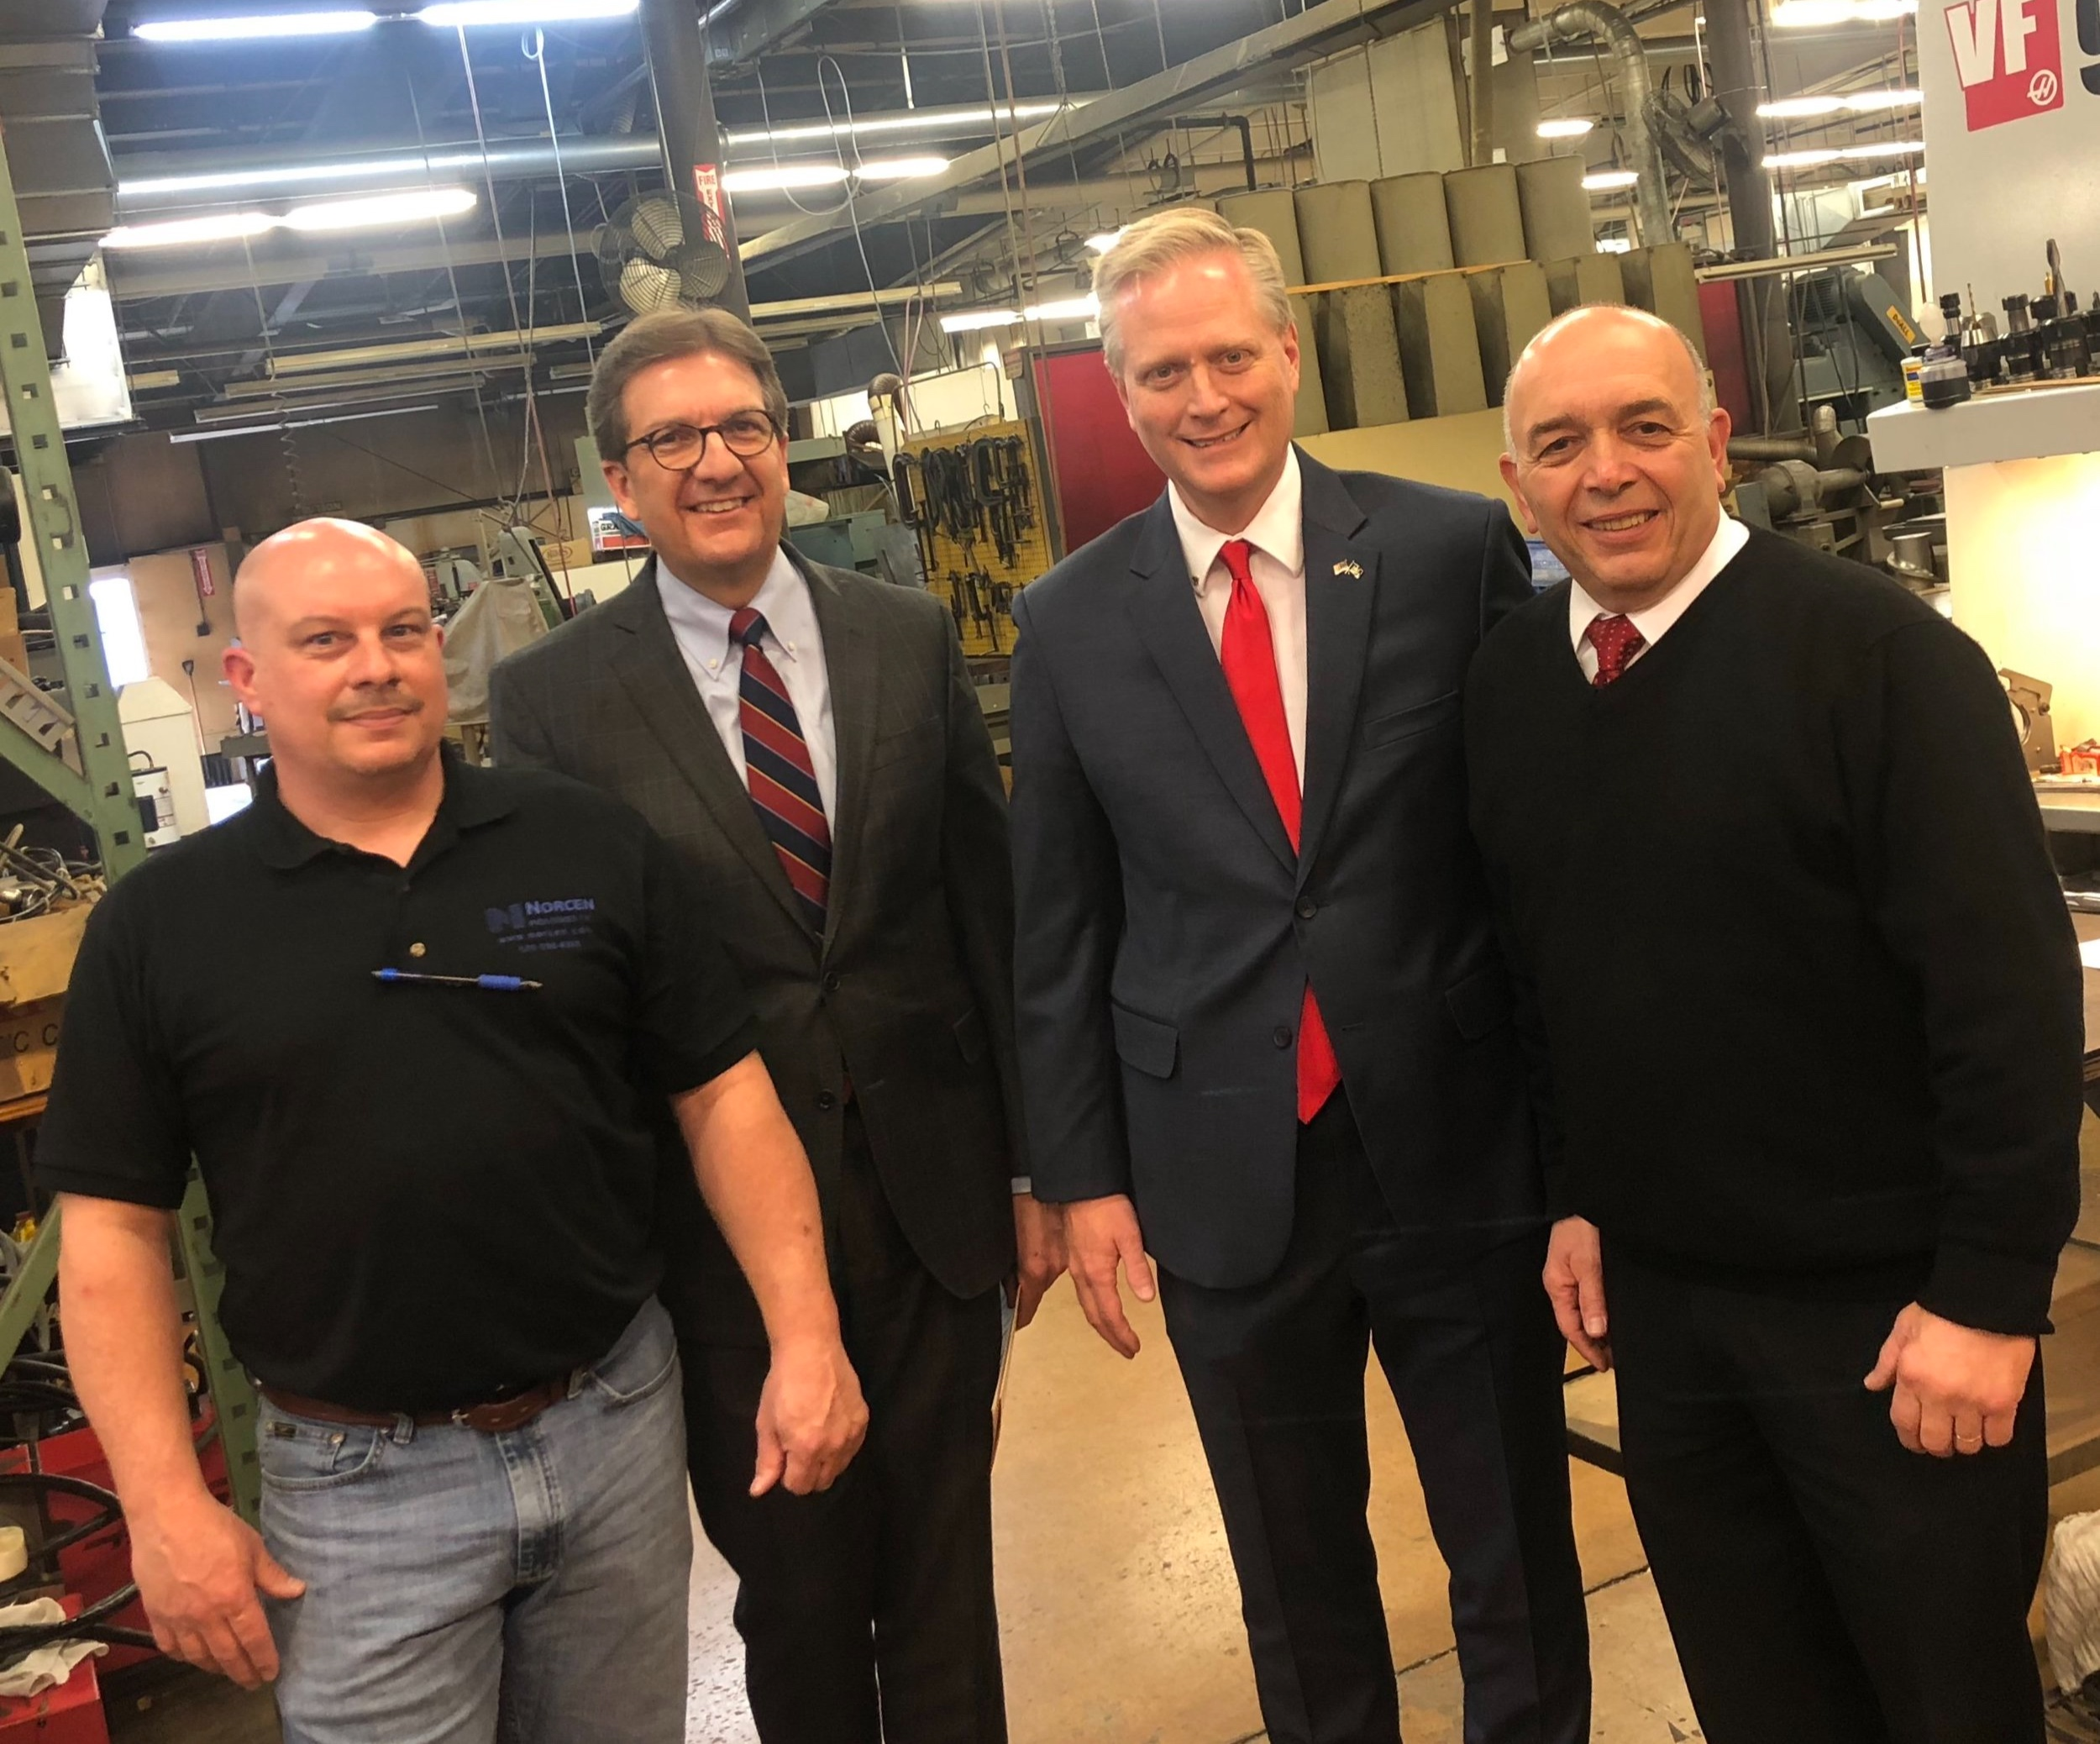 From left to right: Josh Williams, President, Norcen Industries; Gordon Denlinger, State Director, NFIB; Fred Keller; Tony Mussare, Lycoming County Commissioner.